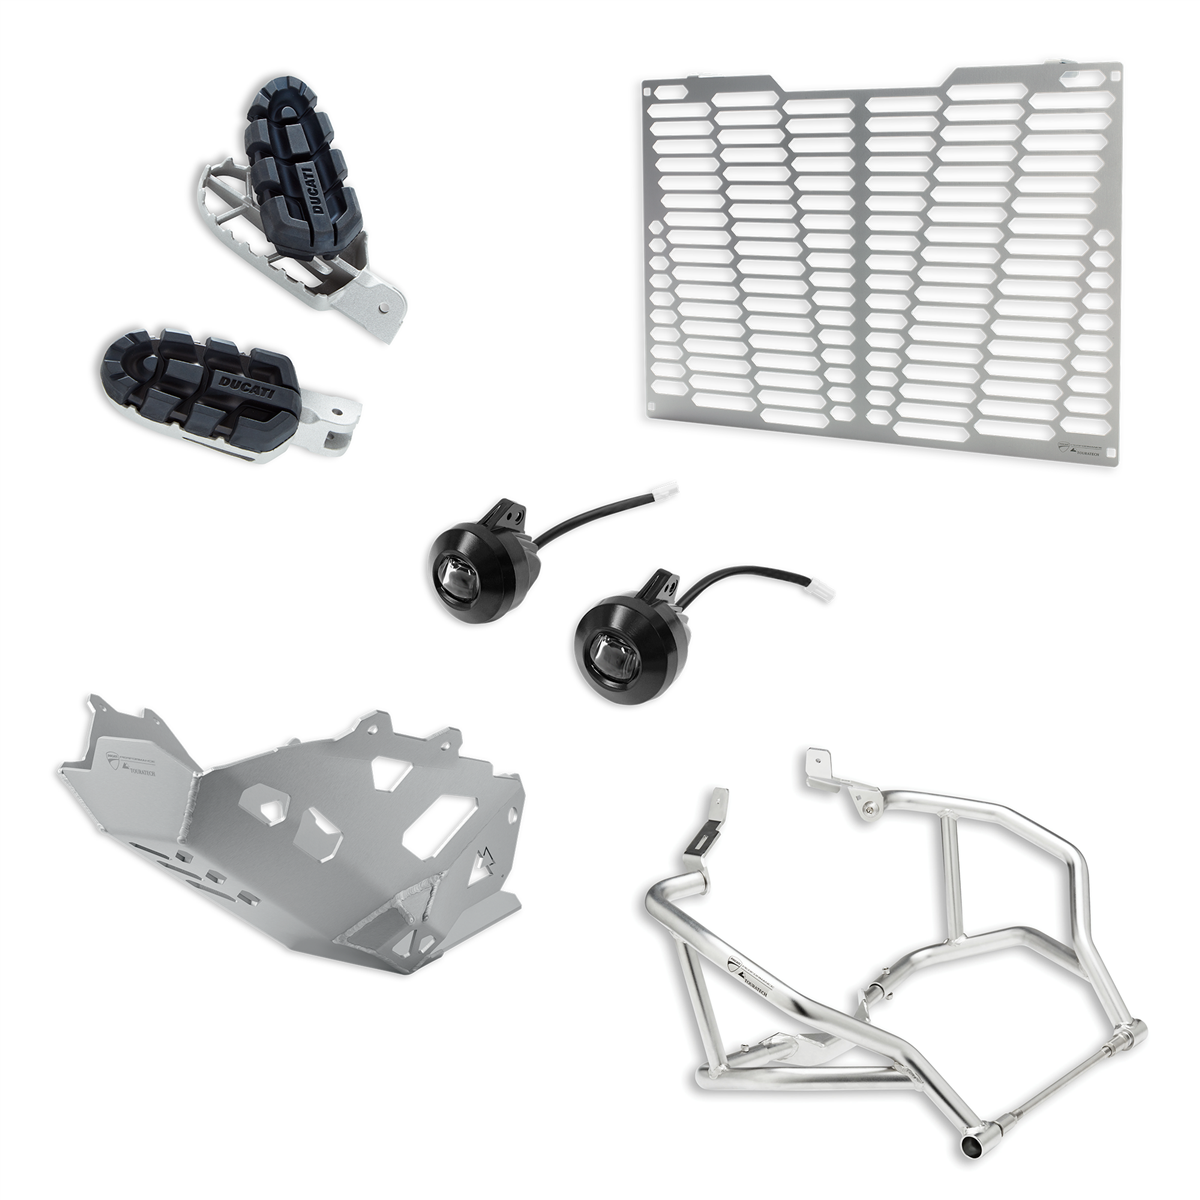 Genuine Ducati Multistrada 950 Enduro Accessory Package 97980831A New Ducati O.E